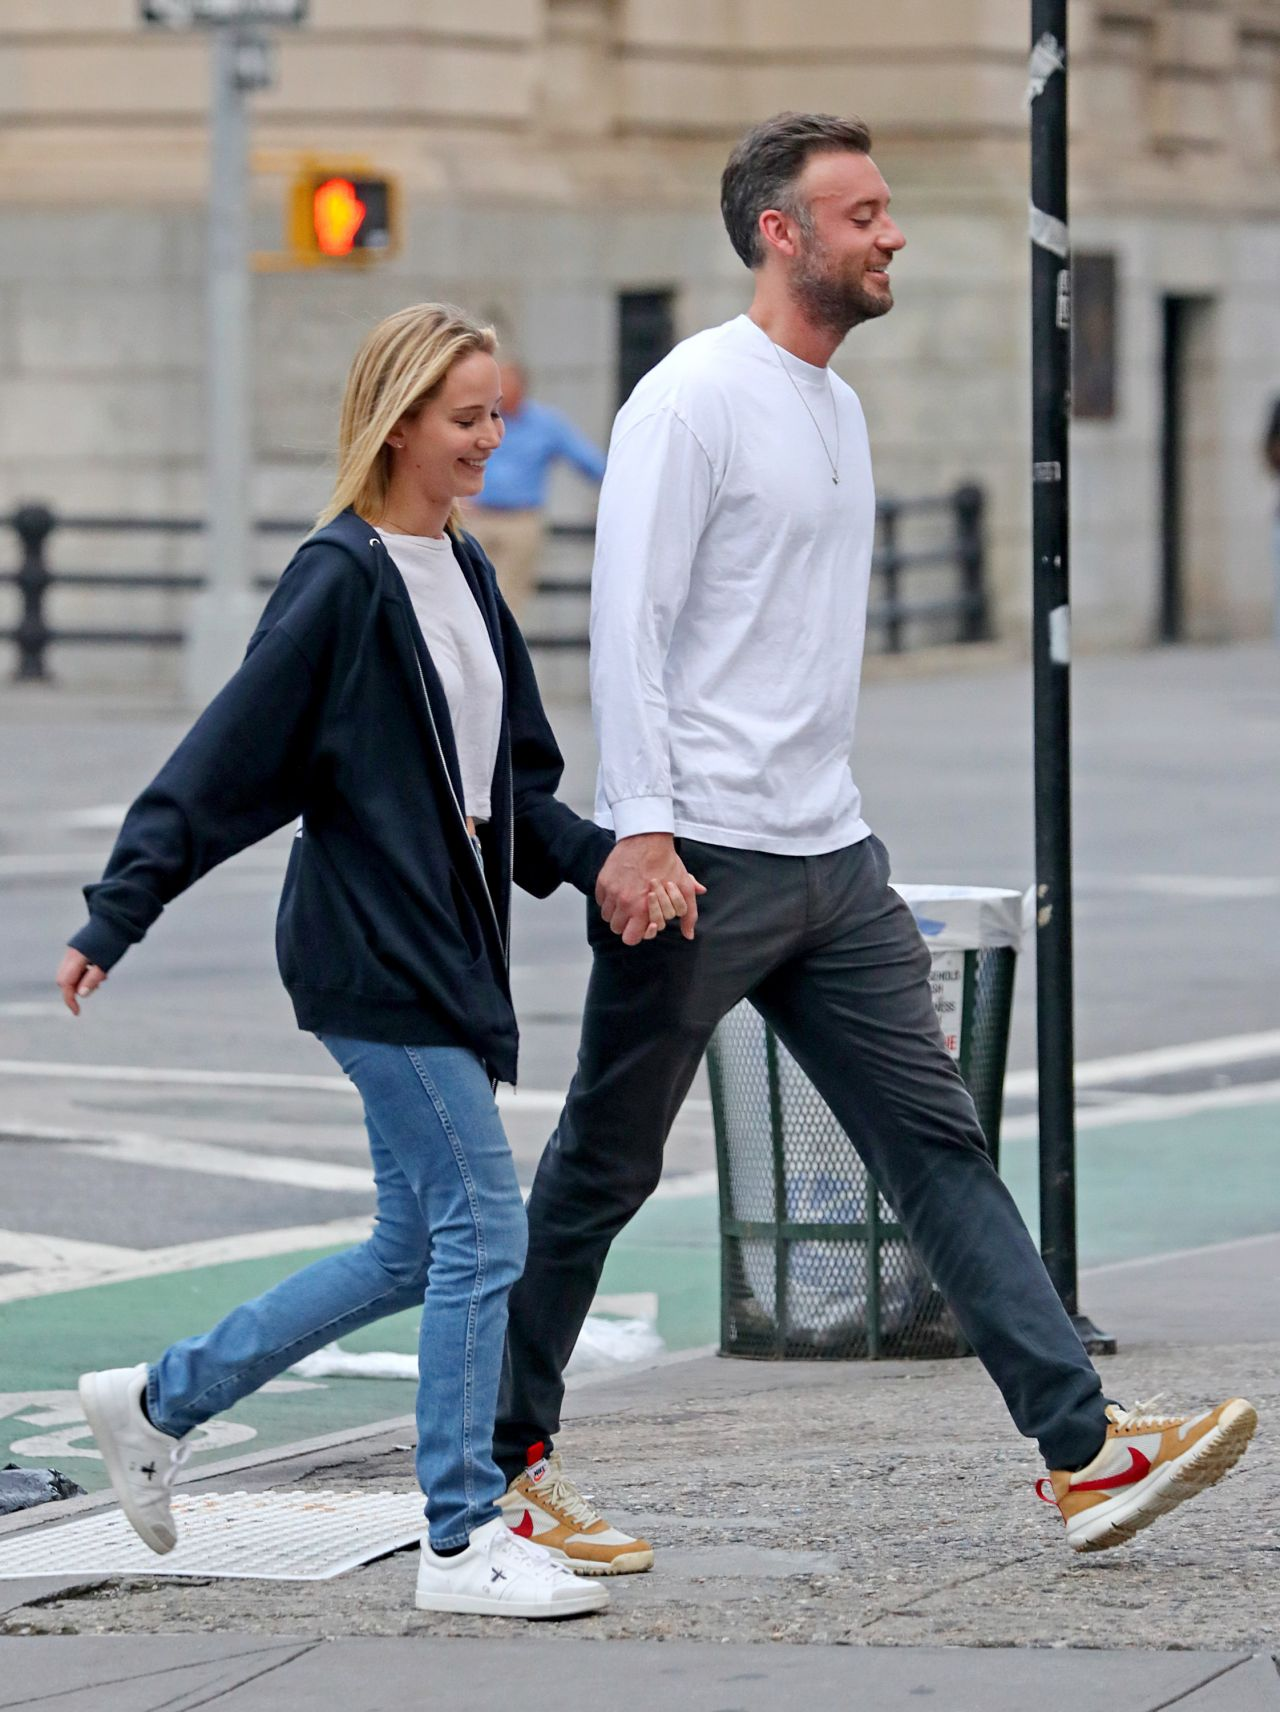 Jennifer Lawrence And Cooke Maroney In NYC 10022018